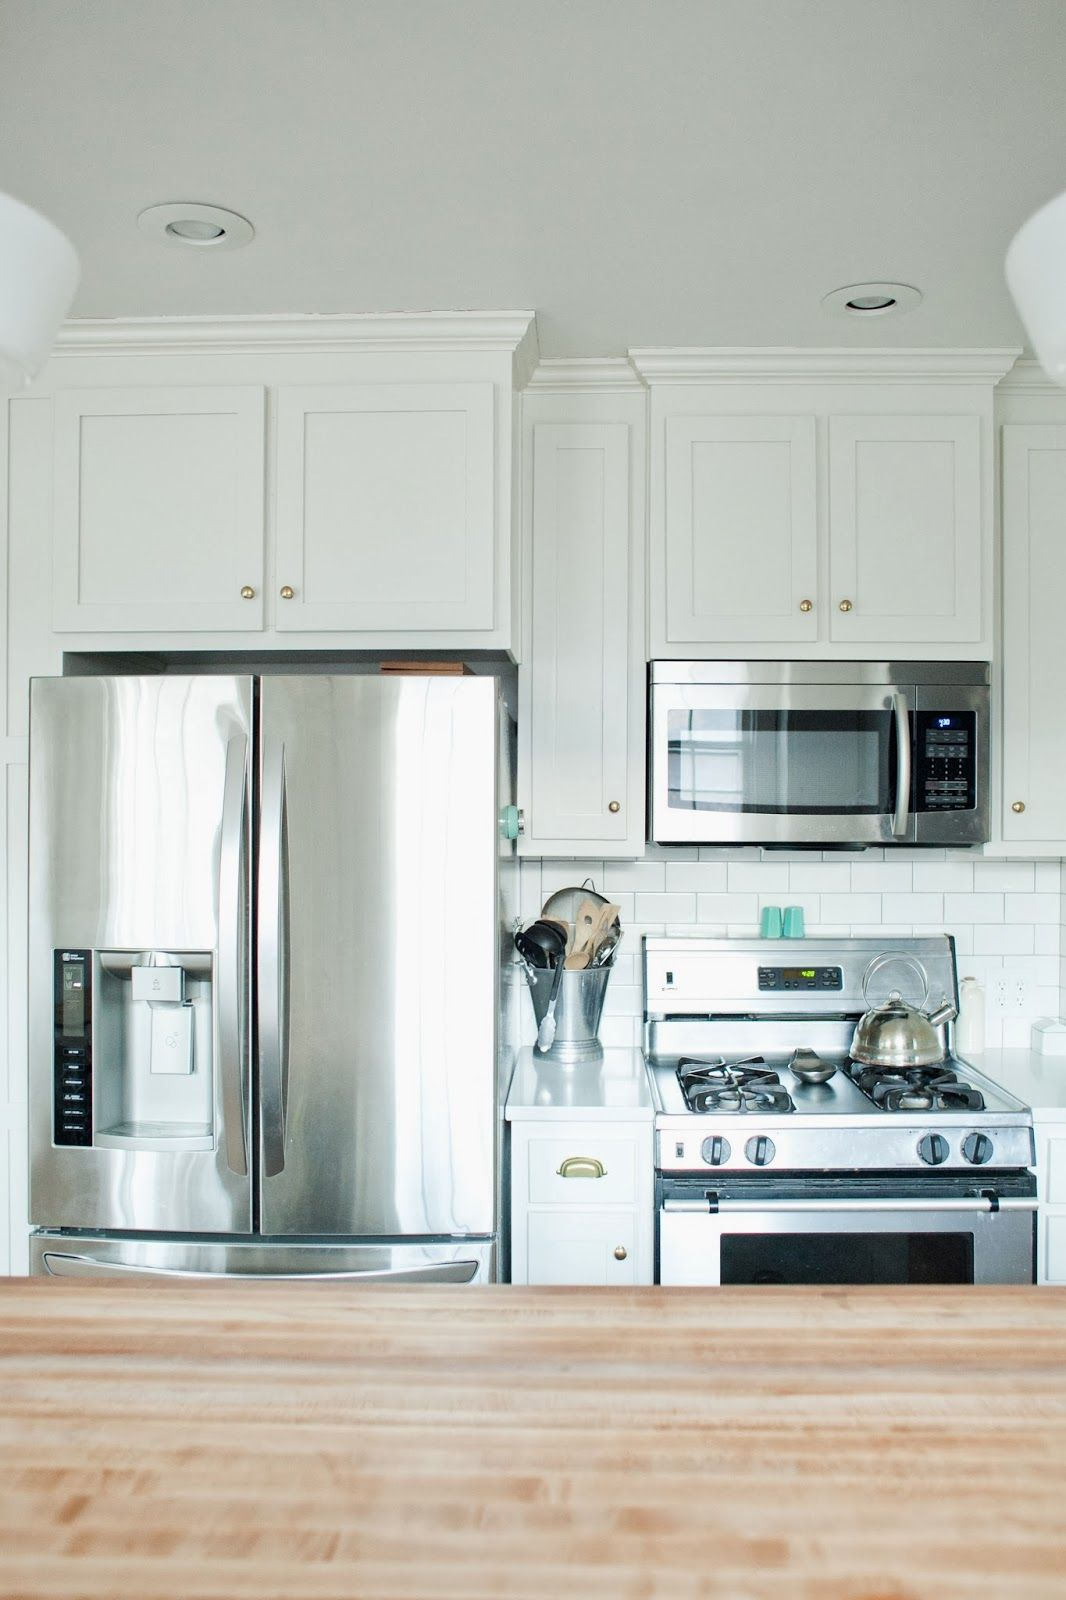 Fridge And Stove Next To Each Other Google Search Kitchen Pinterest Stove Kitchens And